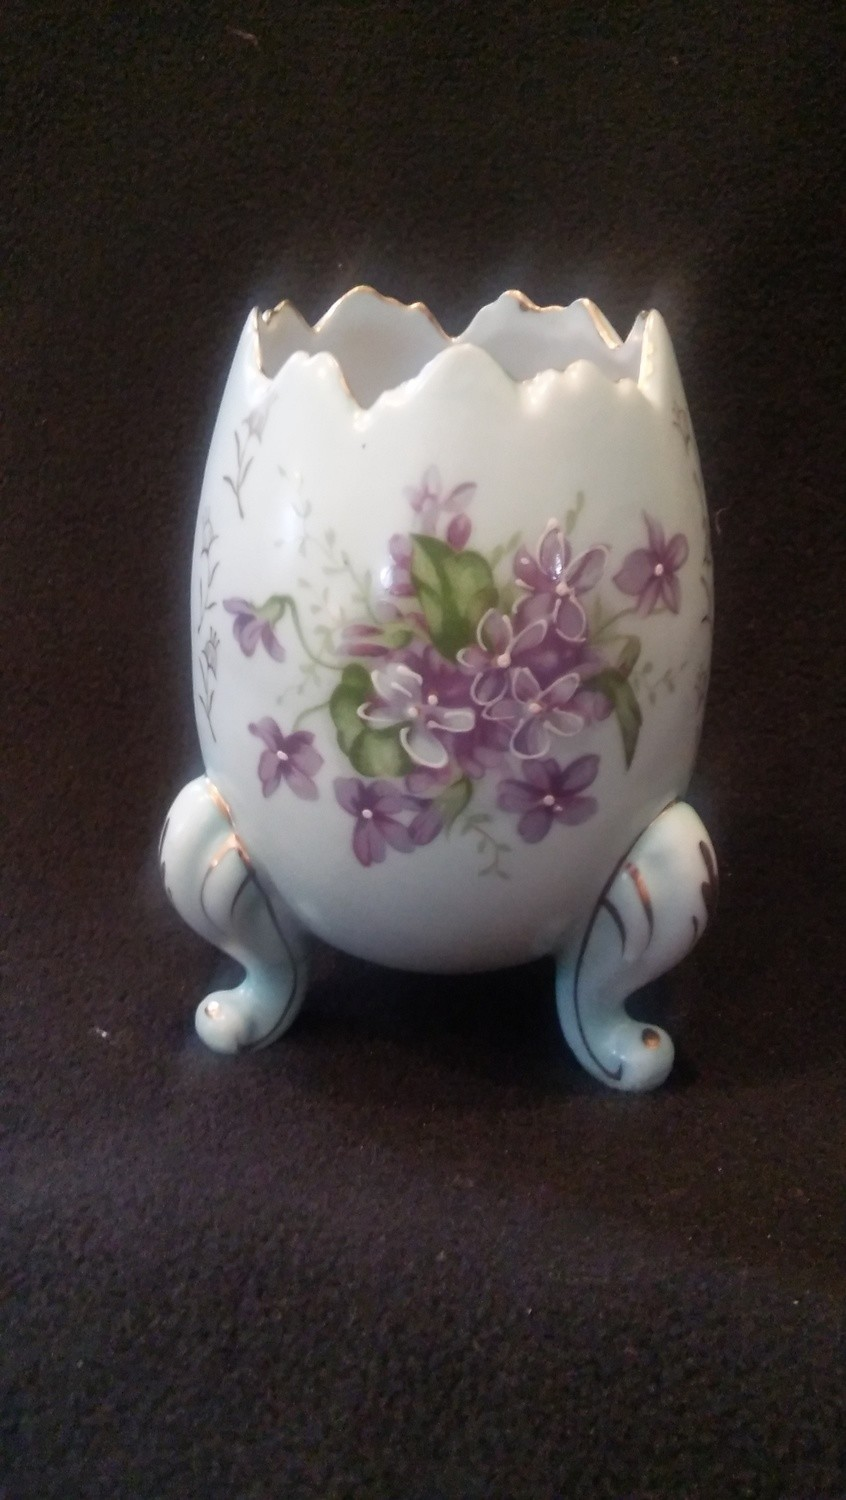 Inarco Porcelain Egg Vase, Hand Painted Blue Floral Design With Gold Trim, Three Footed